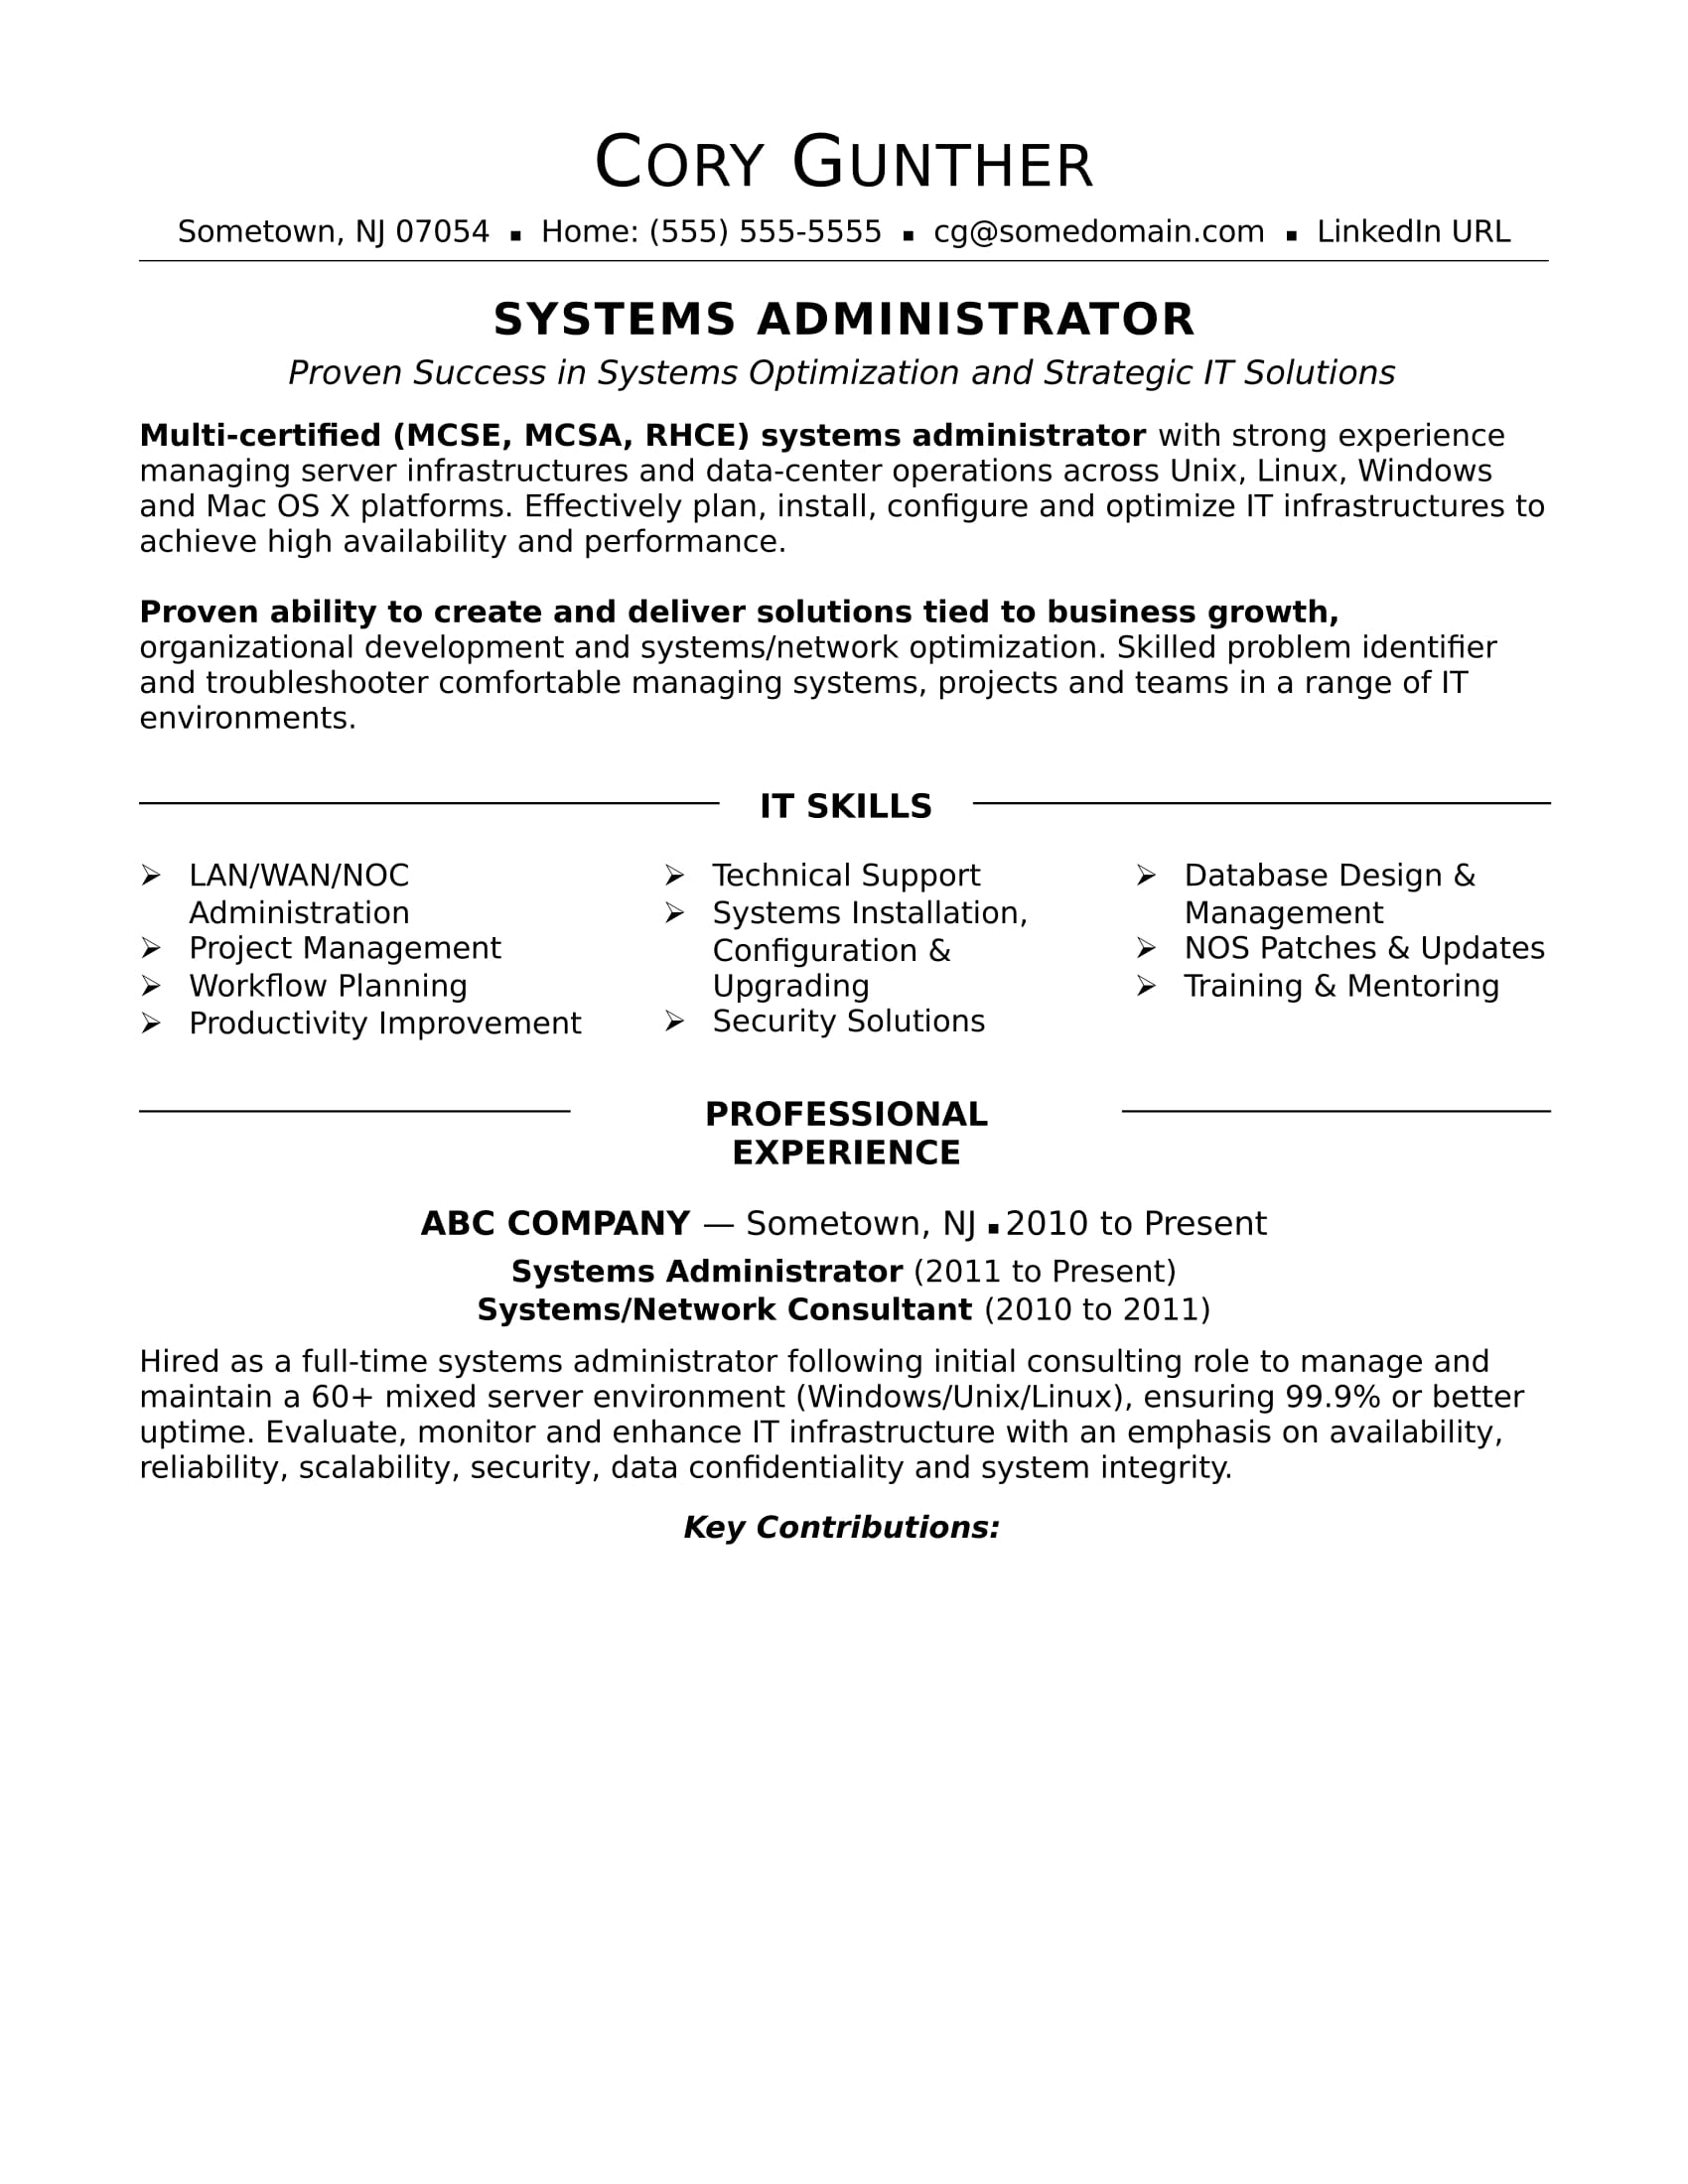 sample resume for an experienced systems administrator monster microsoft azure Resume Microsoft Azure Administrator Sample Resume